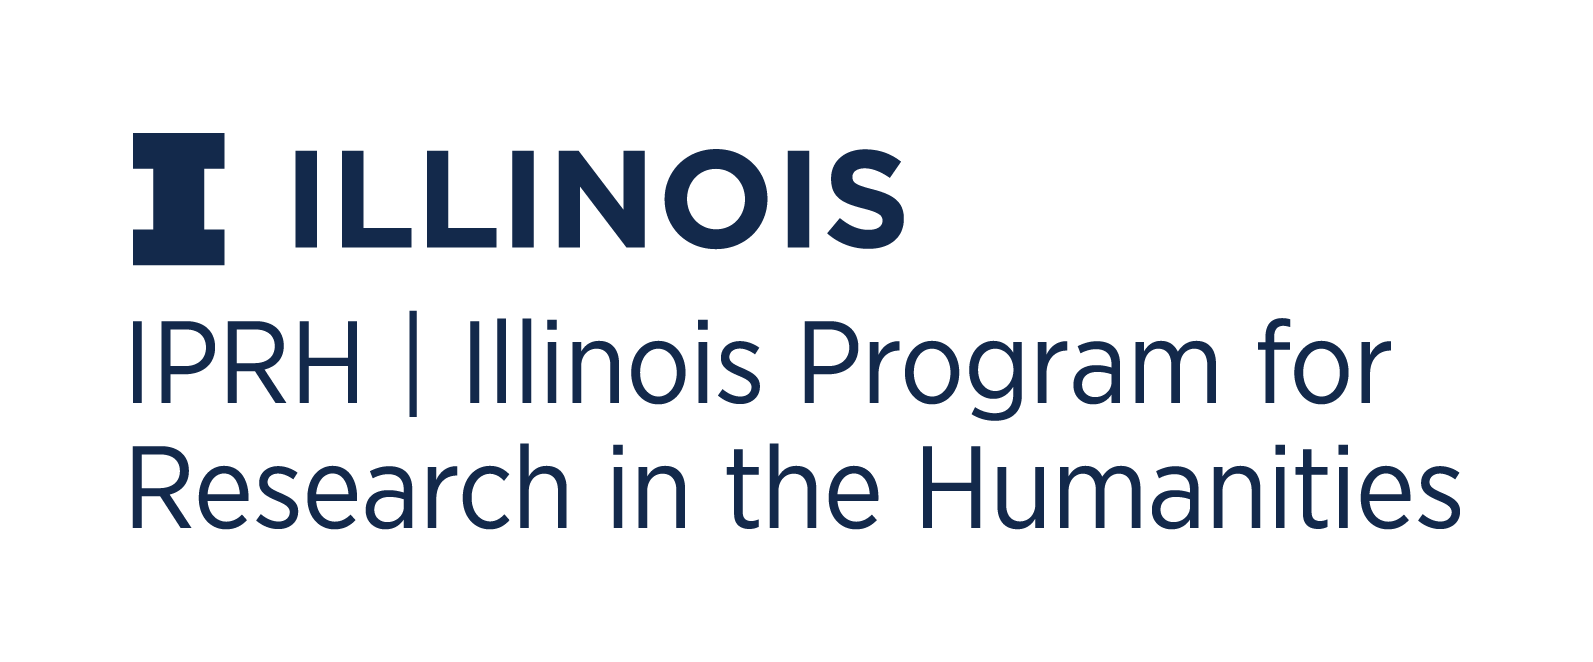 Illinois Program for Research in the Humanities